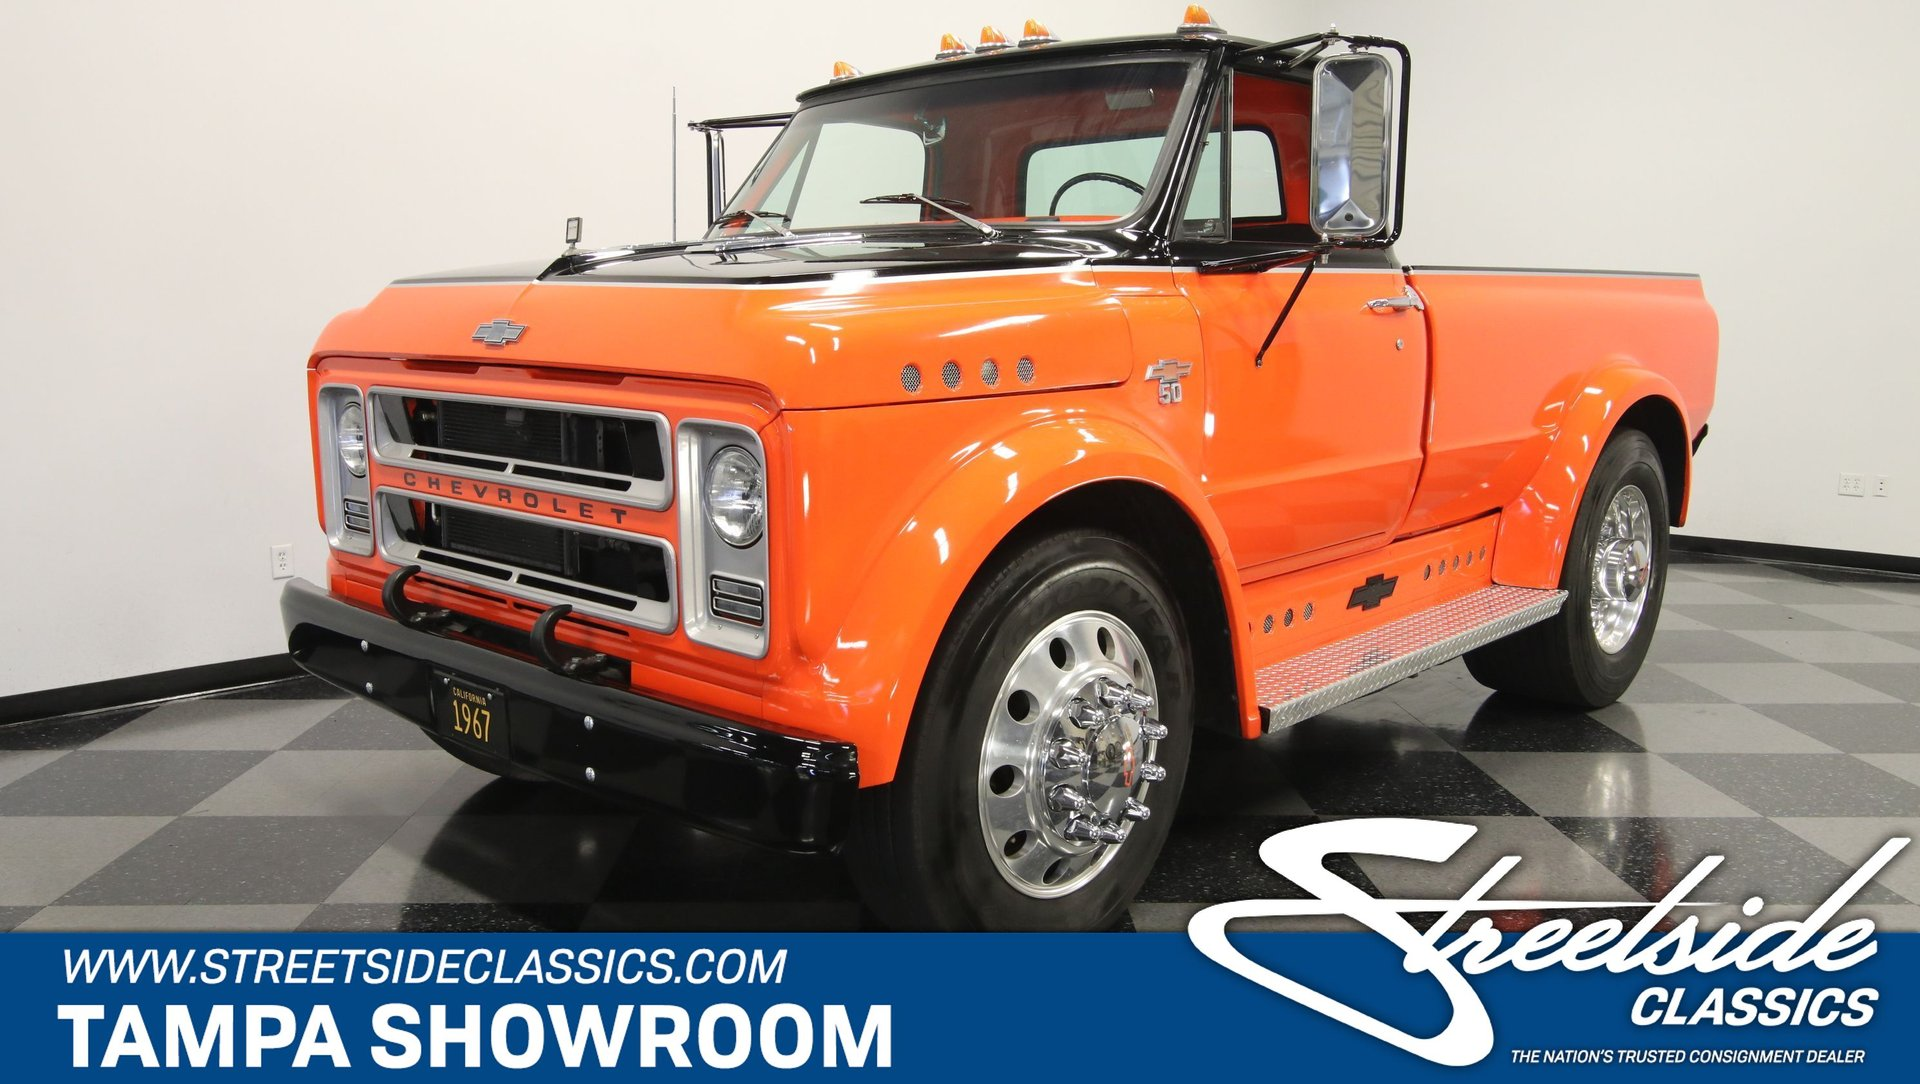 1967 Chevrolet C 50 Classic Cars For Sale Streetside Classics The Nation S 1 Consignment Dealer